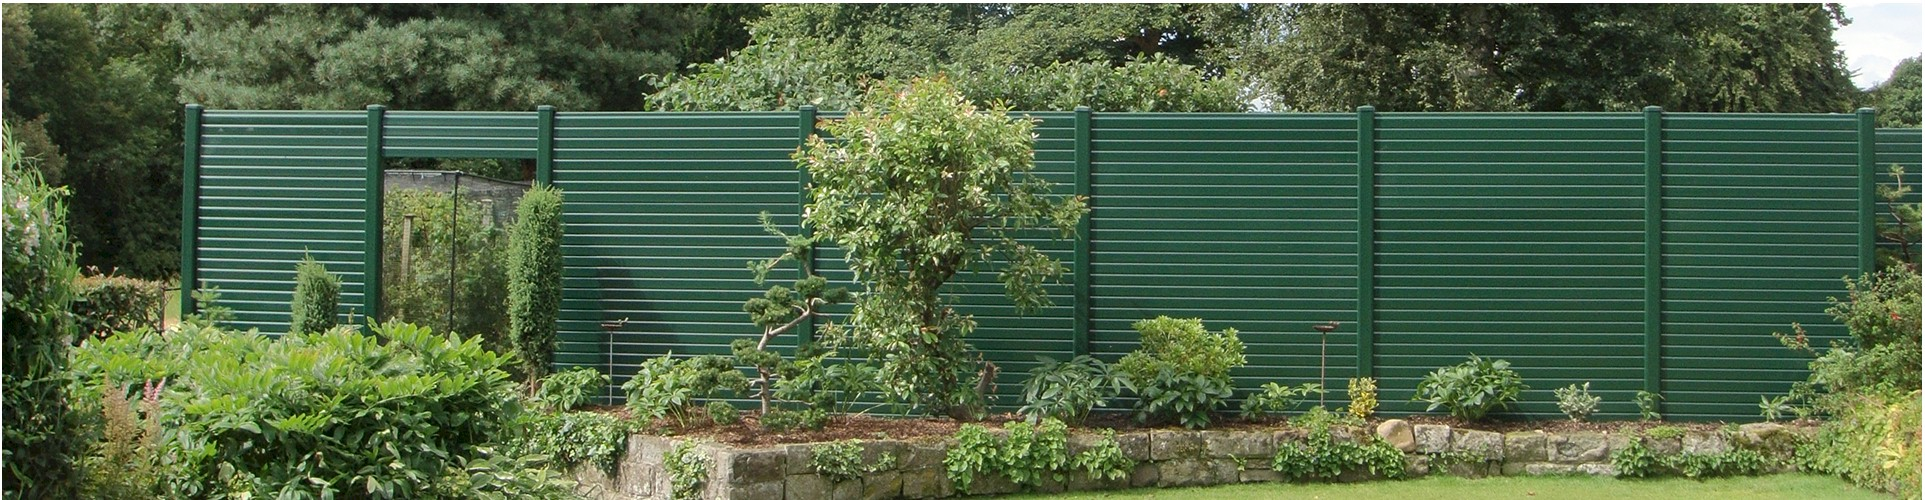 Suppliers of plastic garden fencing order online at